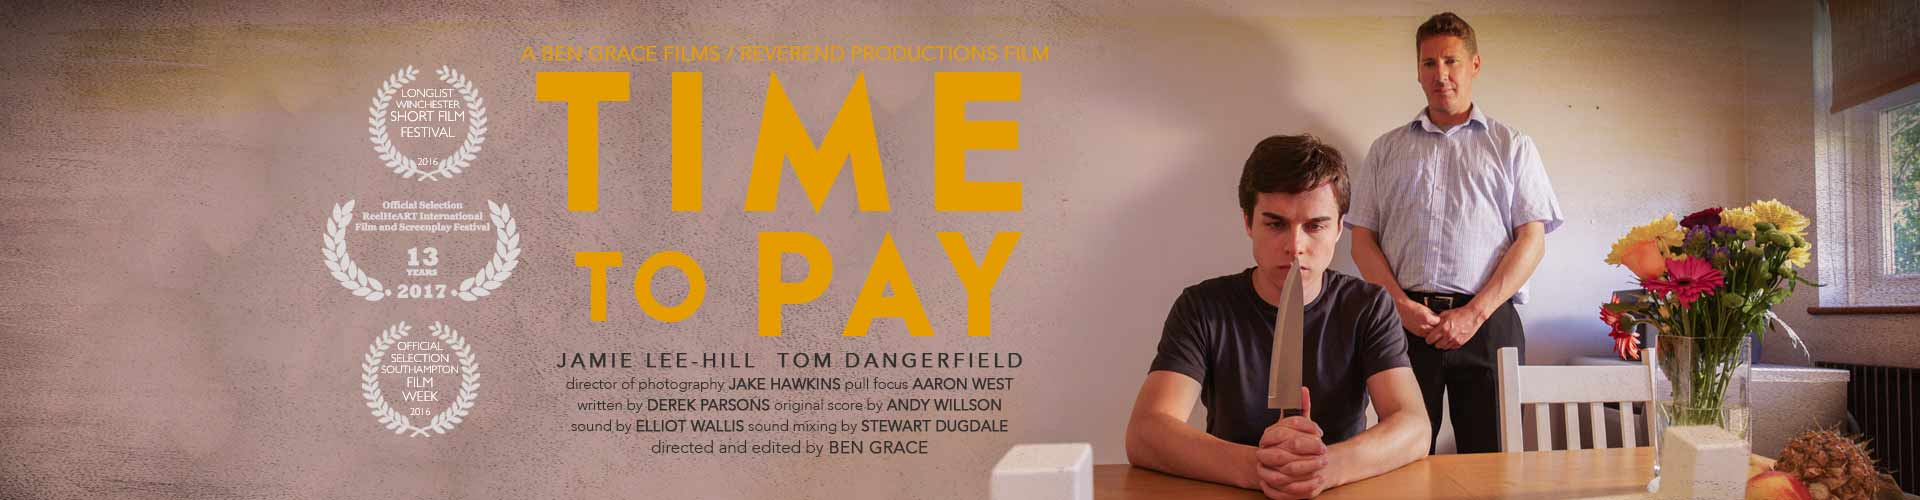 Time to Pay| Ben Grace Films | BenGrace.co.uk